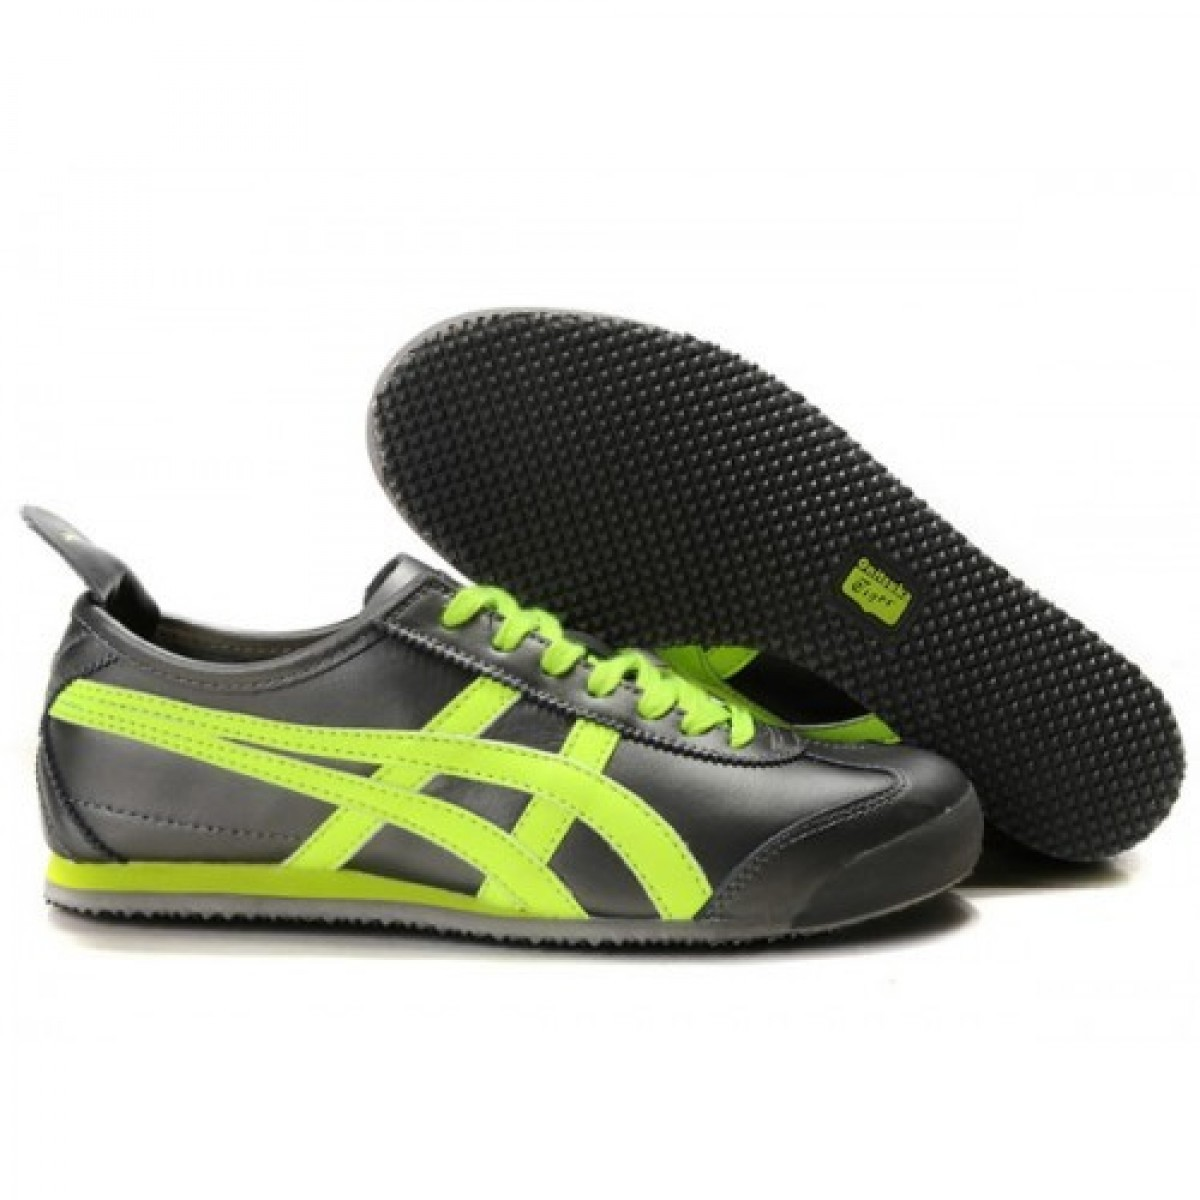 Chaussures 613576 Green Noires Mexico Light Lauta Asics E9HIYWD2